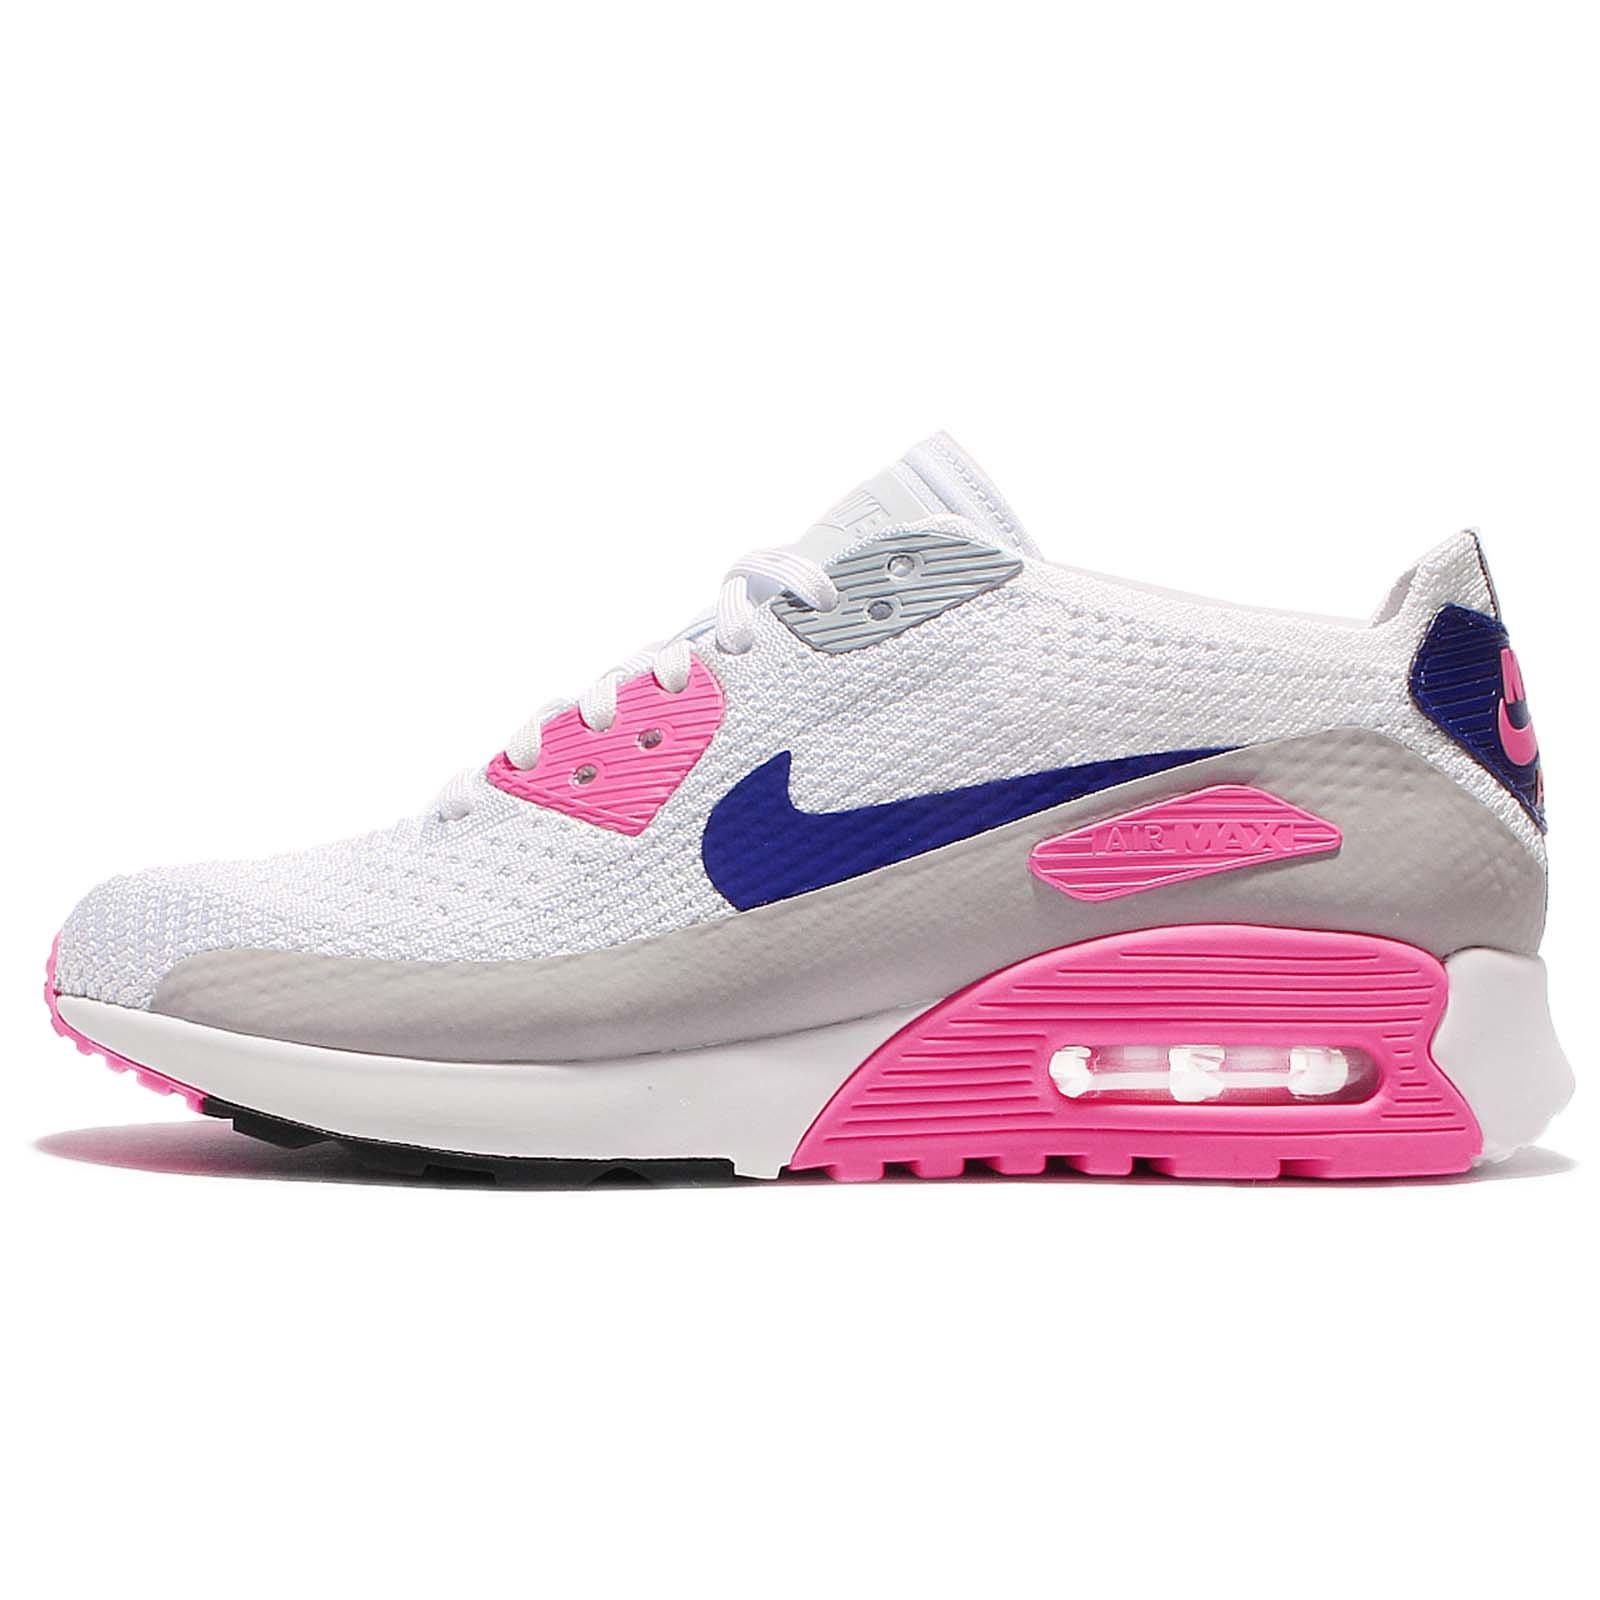 Nike Air Max 90 Ultra 2.0 Flyknit Women's Sneaker (7 B(M) US) by NIKE (Image #1)